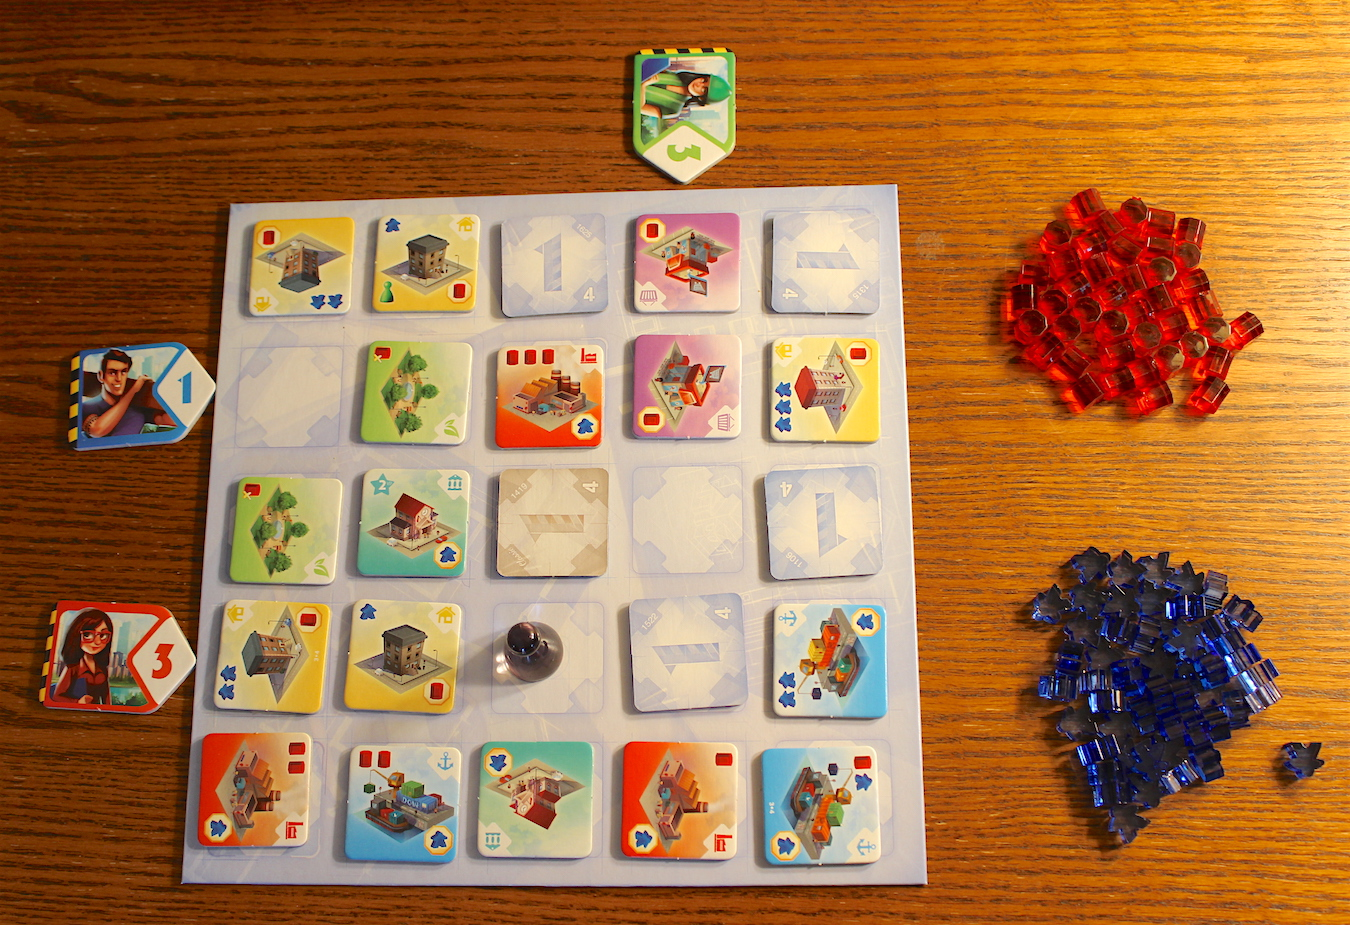 Choosing tiles from the construction site. Note the Urbanist token, which just moved to that spot after Red took his move.